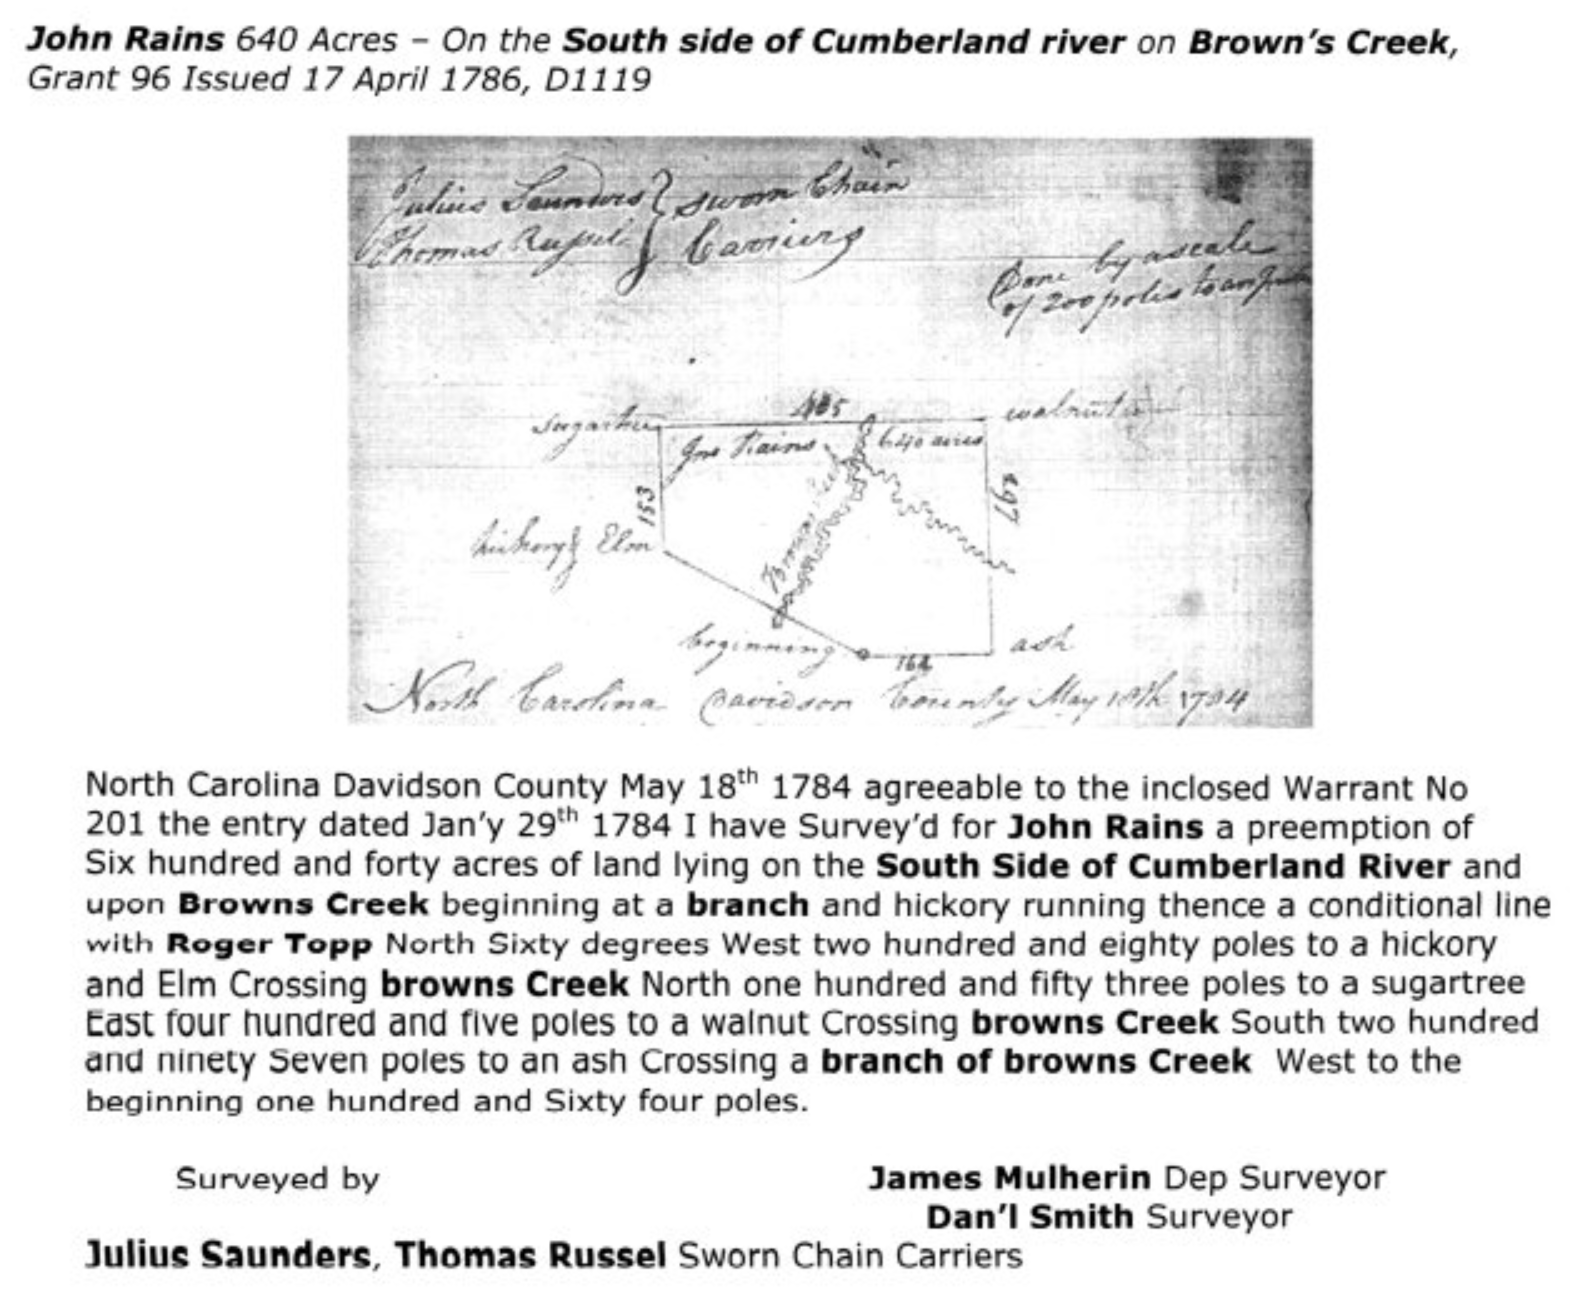 Example of Revolutionary War land survey from near Nashville published recently by Drake et al. (   http://www.cumberlandpioneers.com/   ). For each record they provide a copy of the original hand-drawn survey map. Many of the topographic features such as streams or salt licks were first named by these surveyors. They also transcribed the original hand-written notes. This survey is of a property in what is now Davidson Co., TN (Nashville area) but at the time of the survey in 1786 it was part of the state of North Carolina.